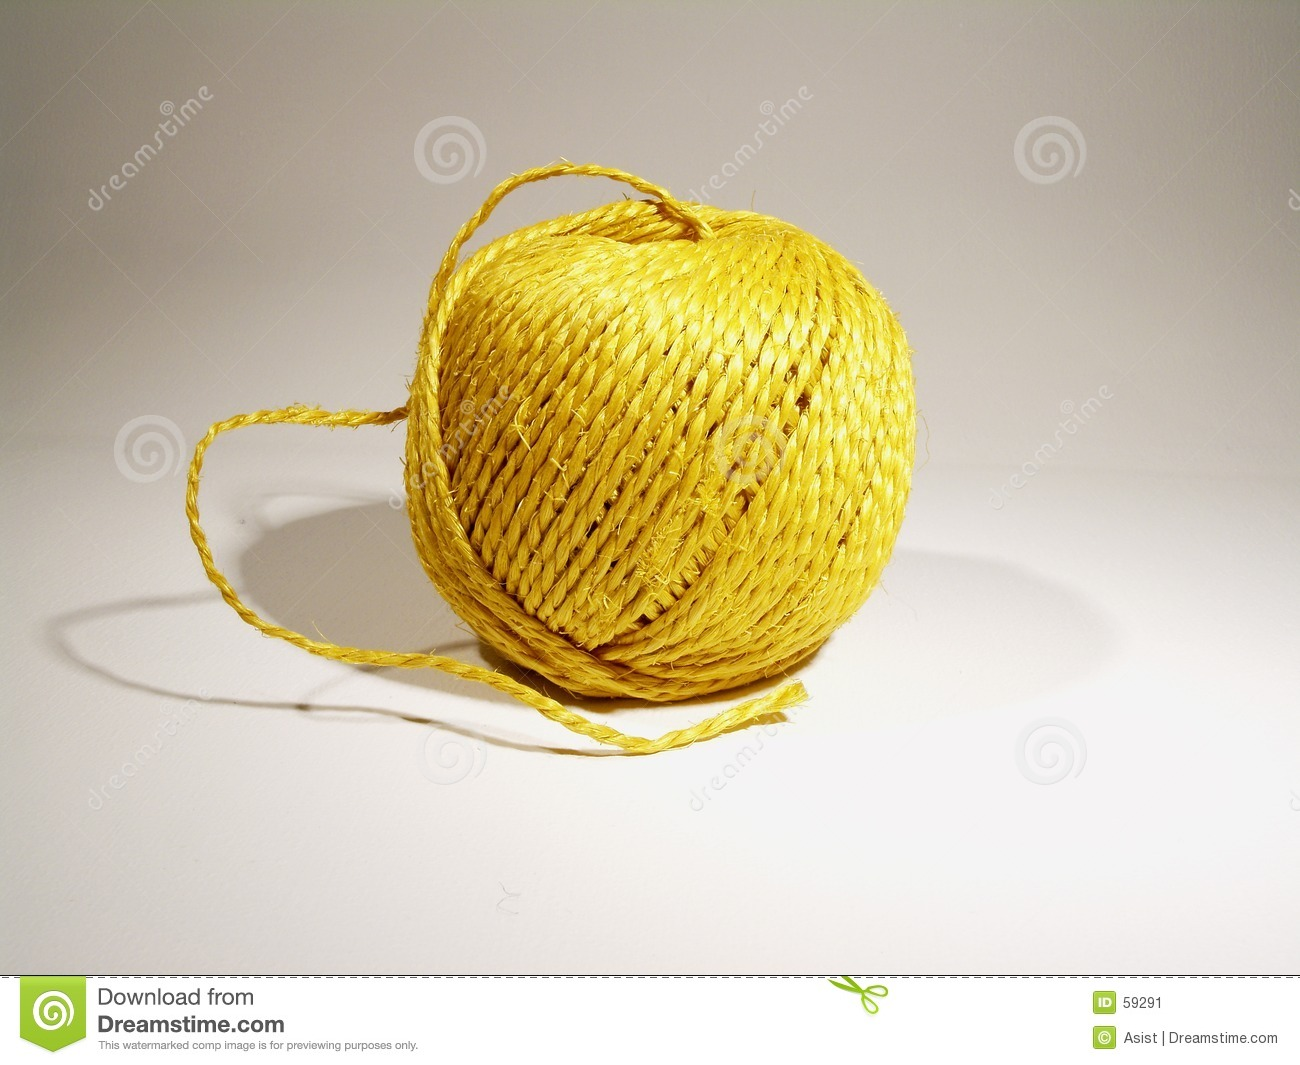 Ball of yellow string